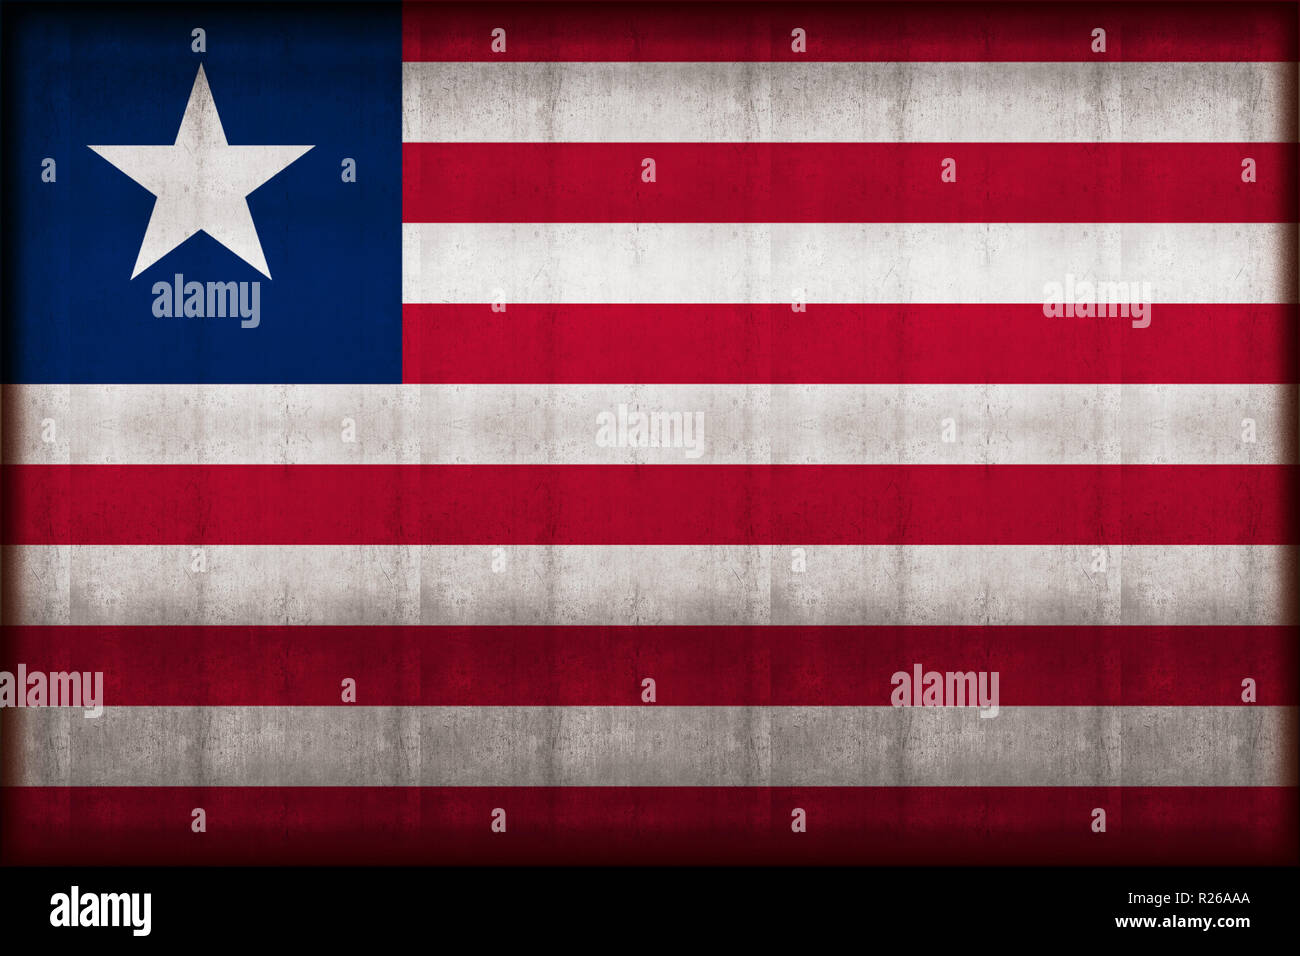 Liberia rusty flag illustration. Usable for background and texture. - Stock Image